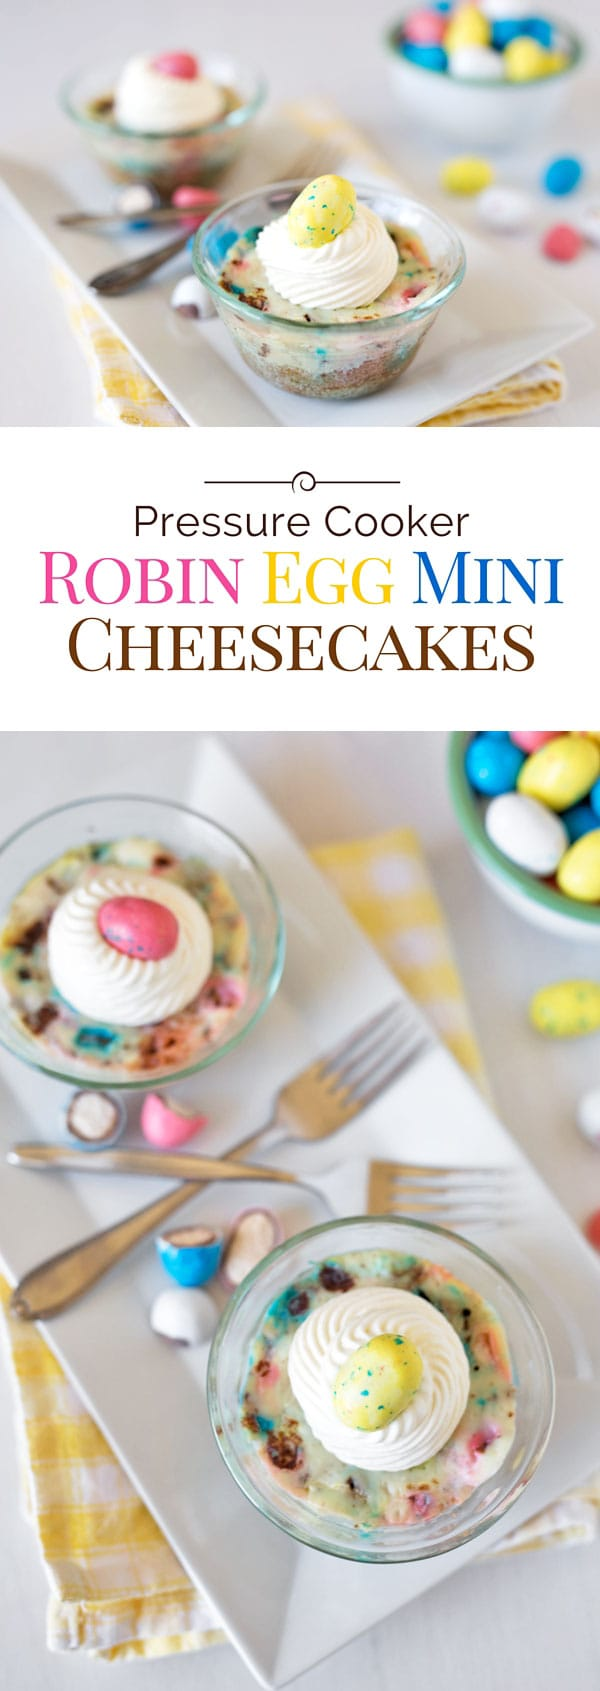 titled photo collage - Pressure Cooker Robin Egg Mini Cheesecakes